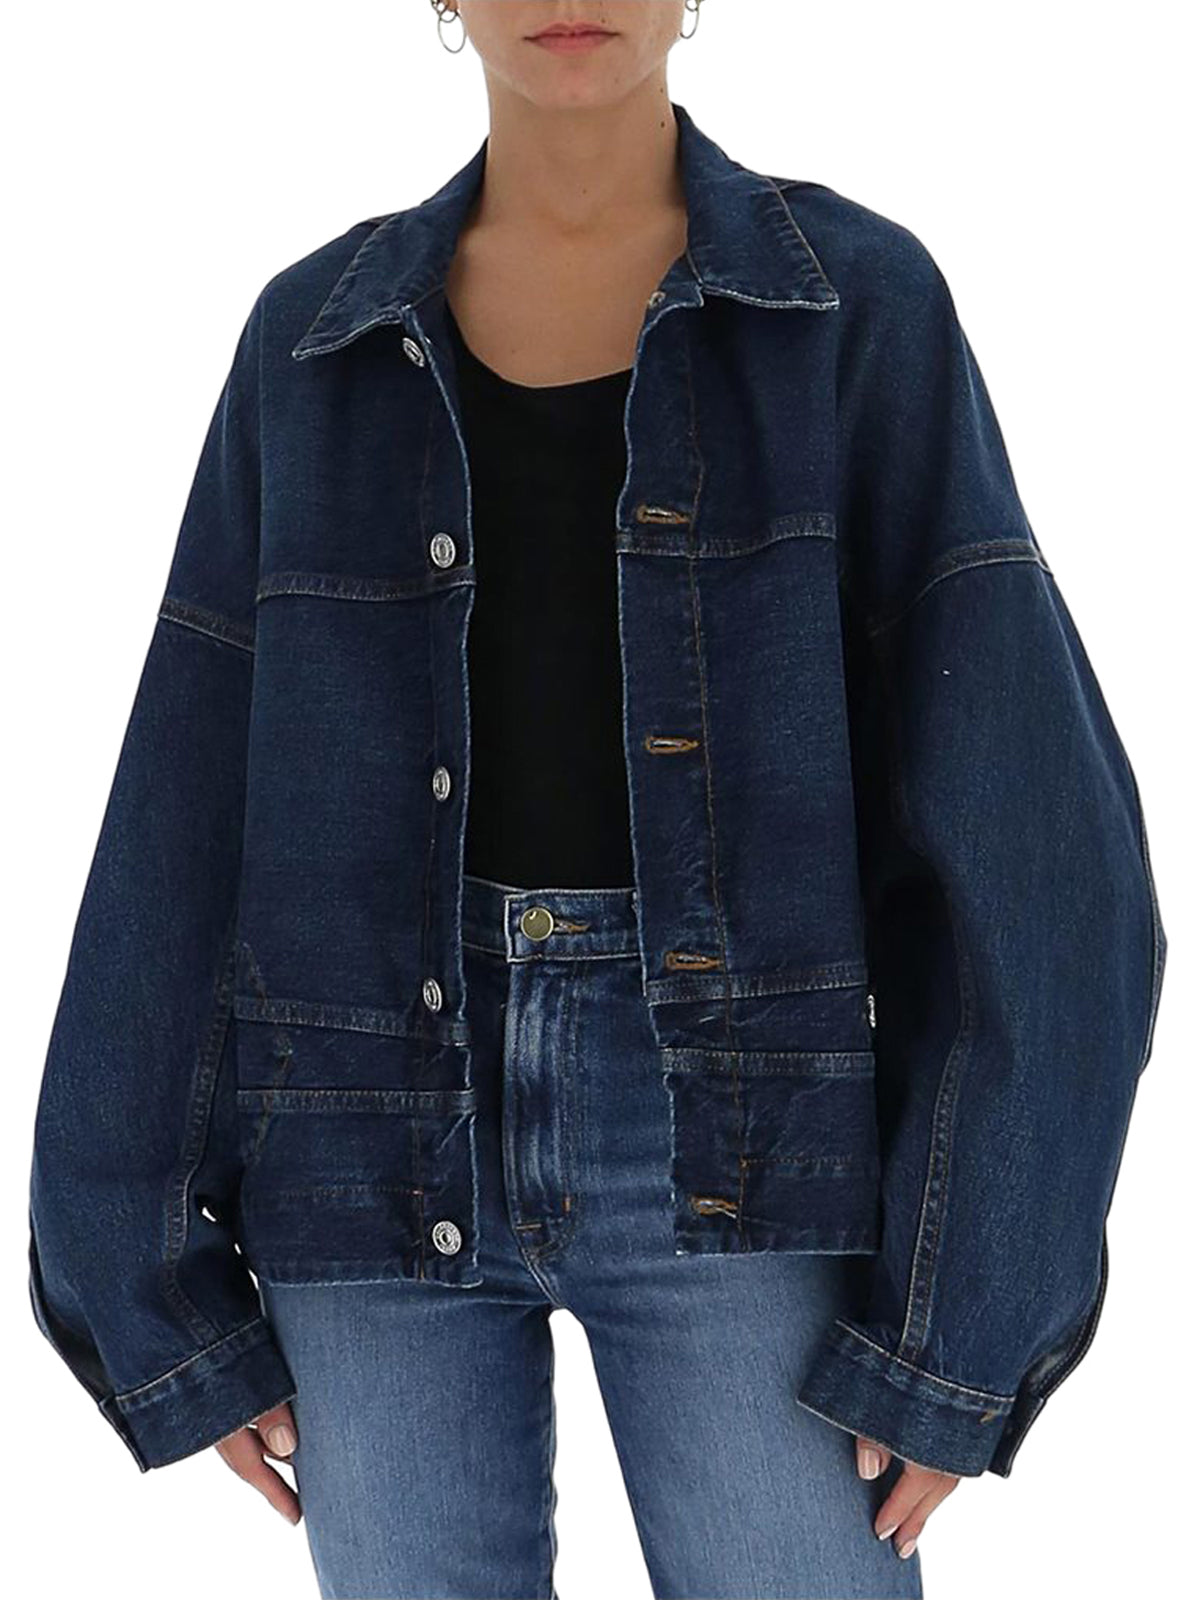 denim jacket in inverted denim